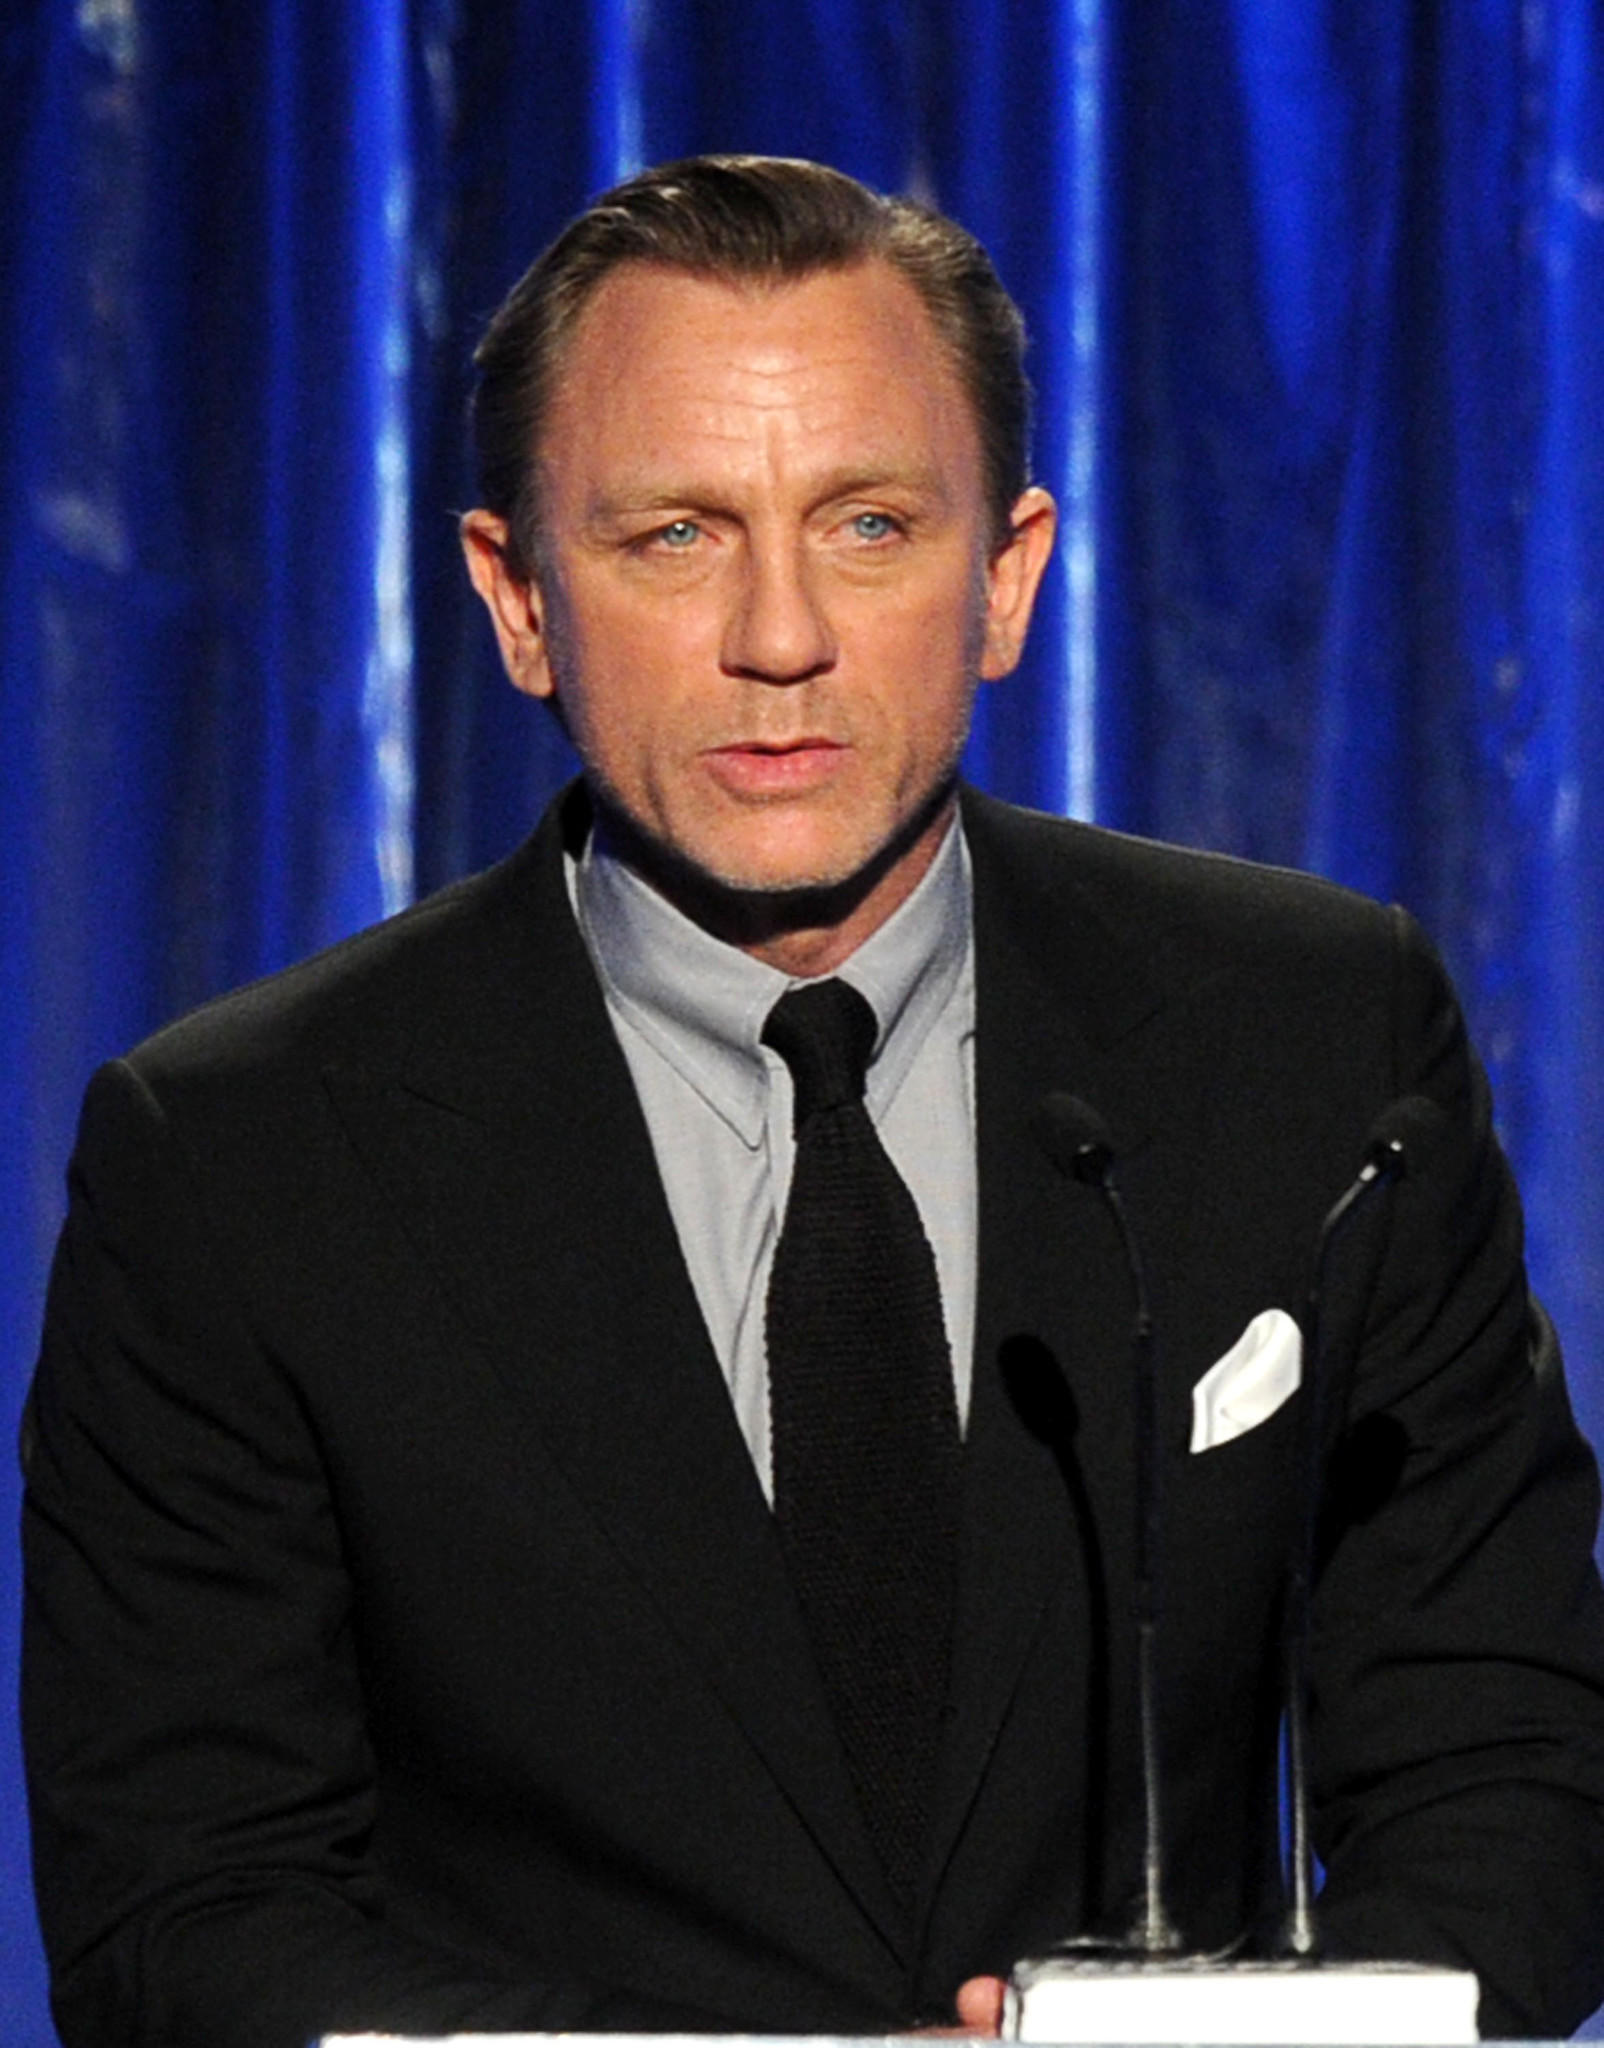 Actor Daniel Craig speaks onstage during the 25th annual Producers Guild of America Awards at The Beverly Hilton Hotel on Jan. 19, 2014 in Beverly Hills, California.